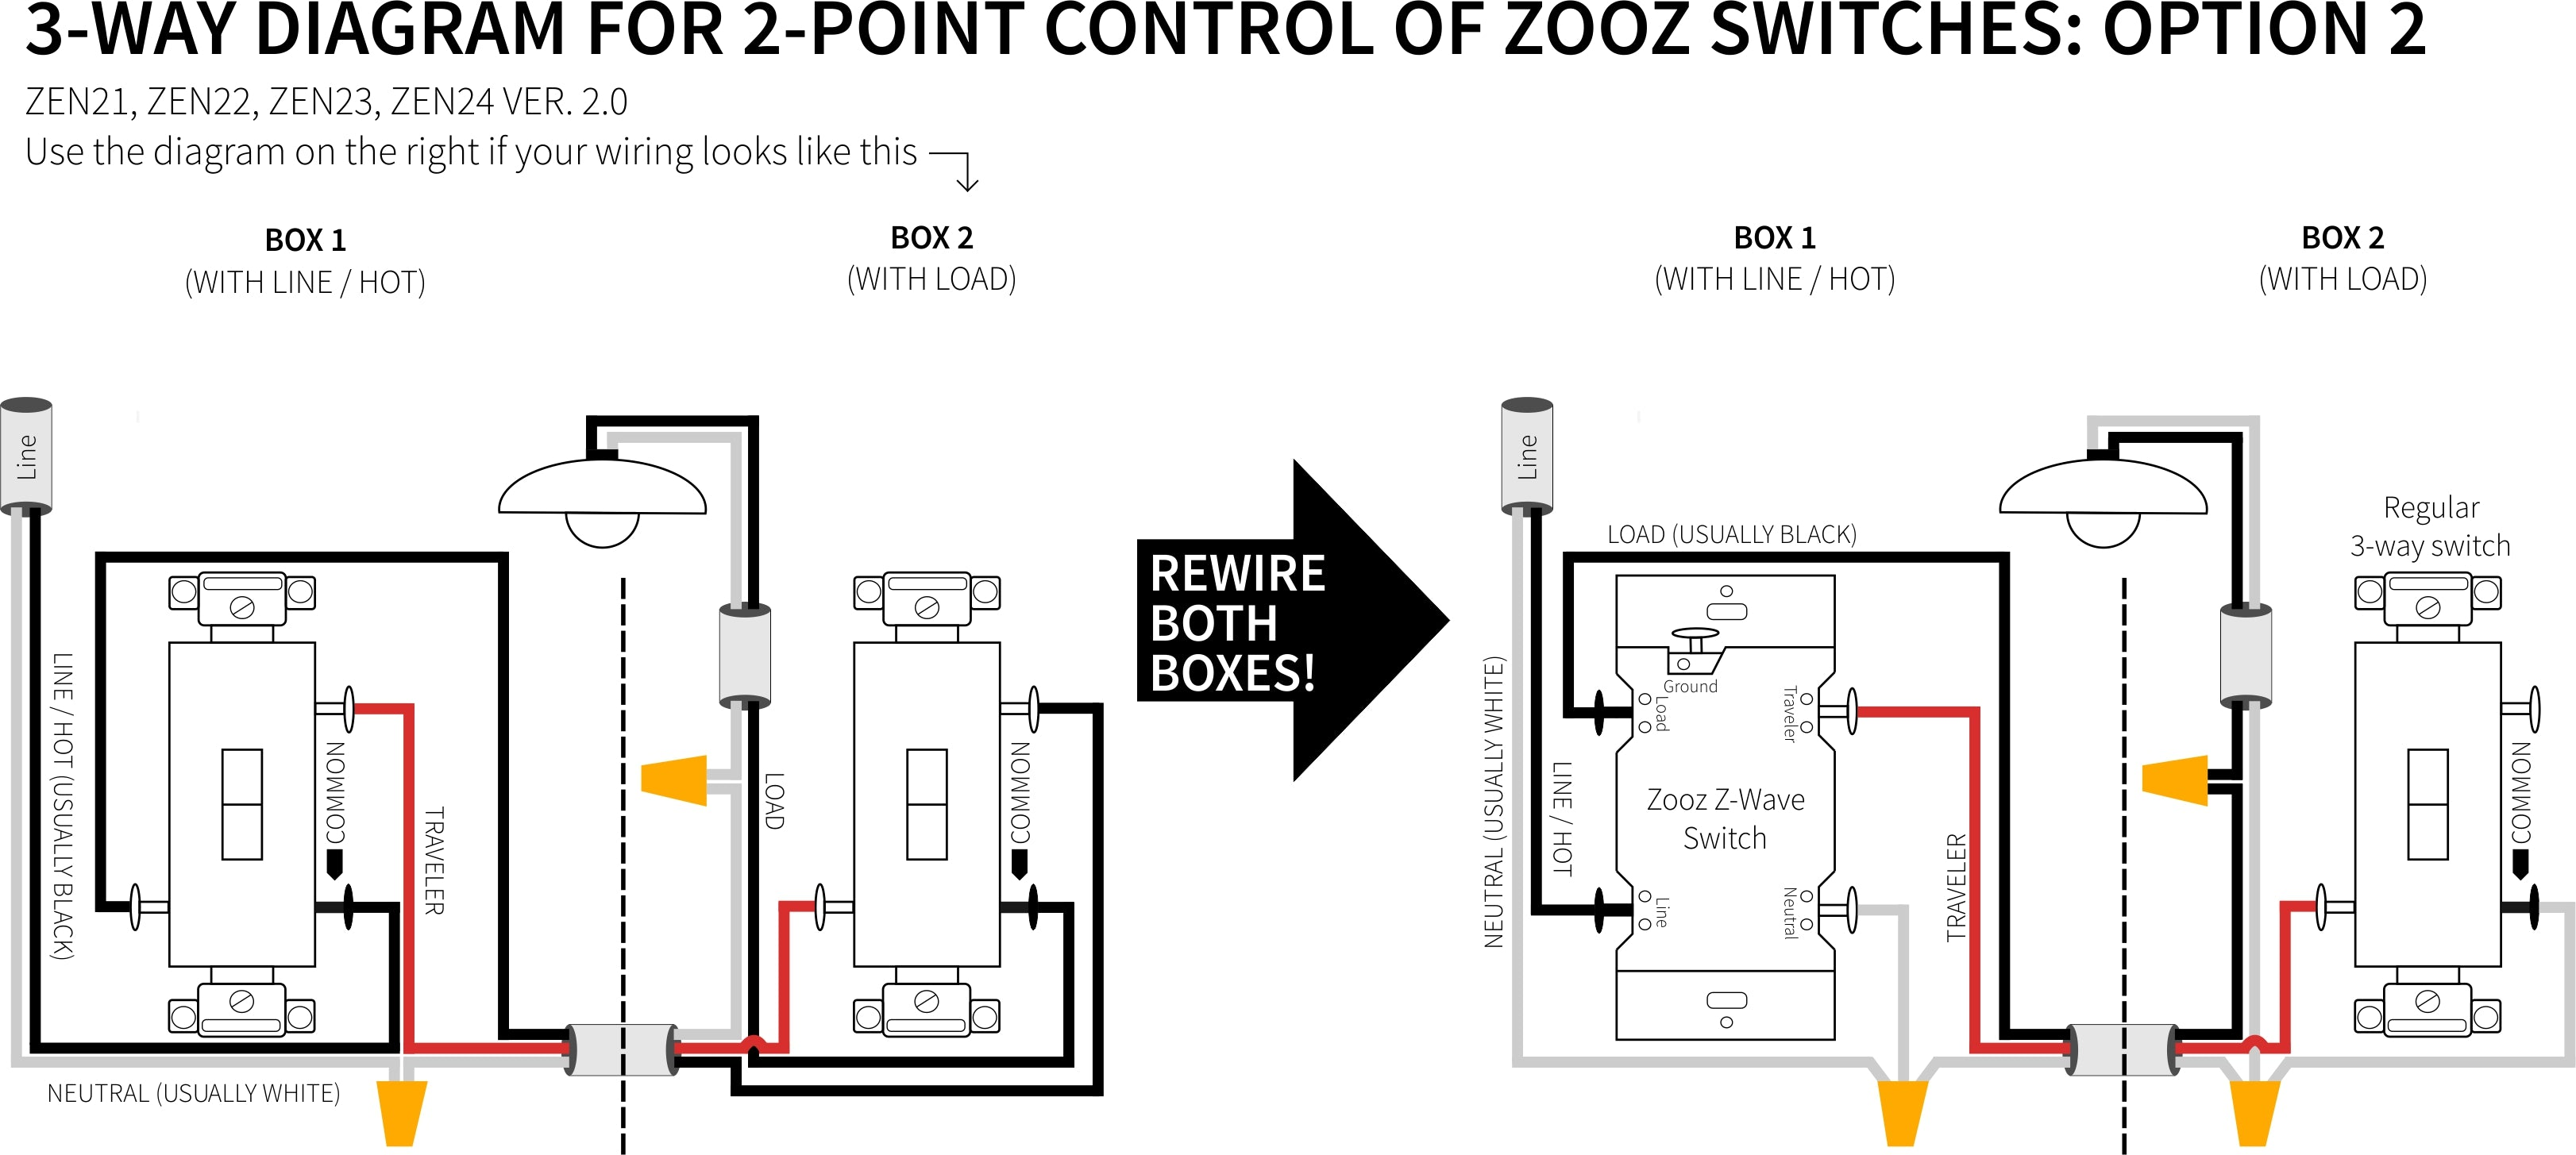 44040 Zooz Z Wave Plus Dimmer Toggle Switch ZEN44040440 VER. 440.40   44040 Pack Deal